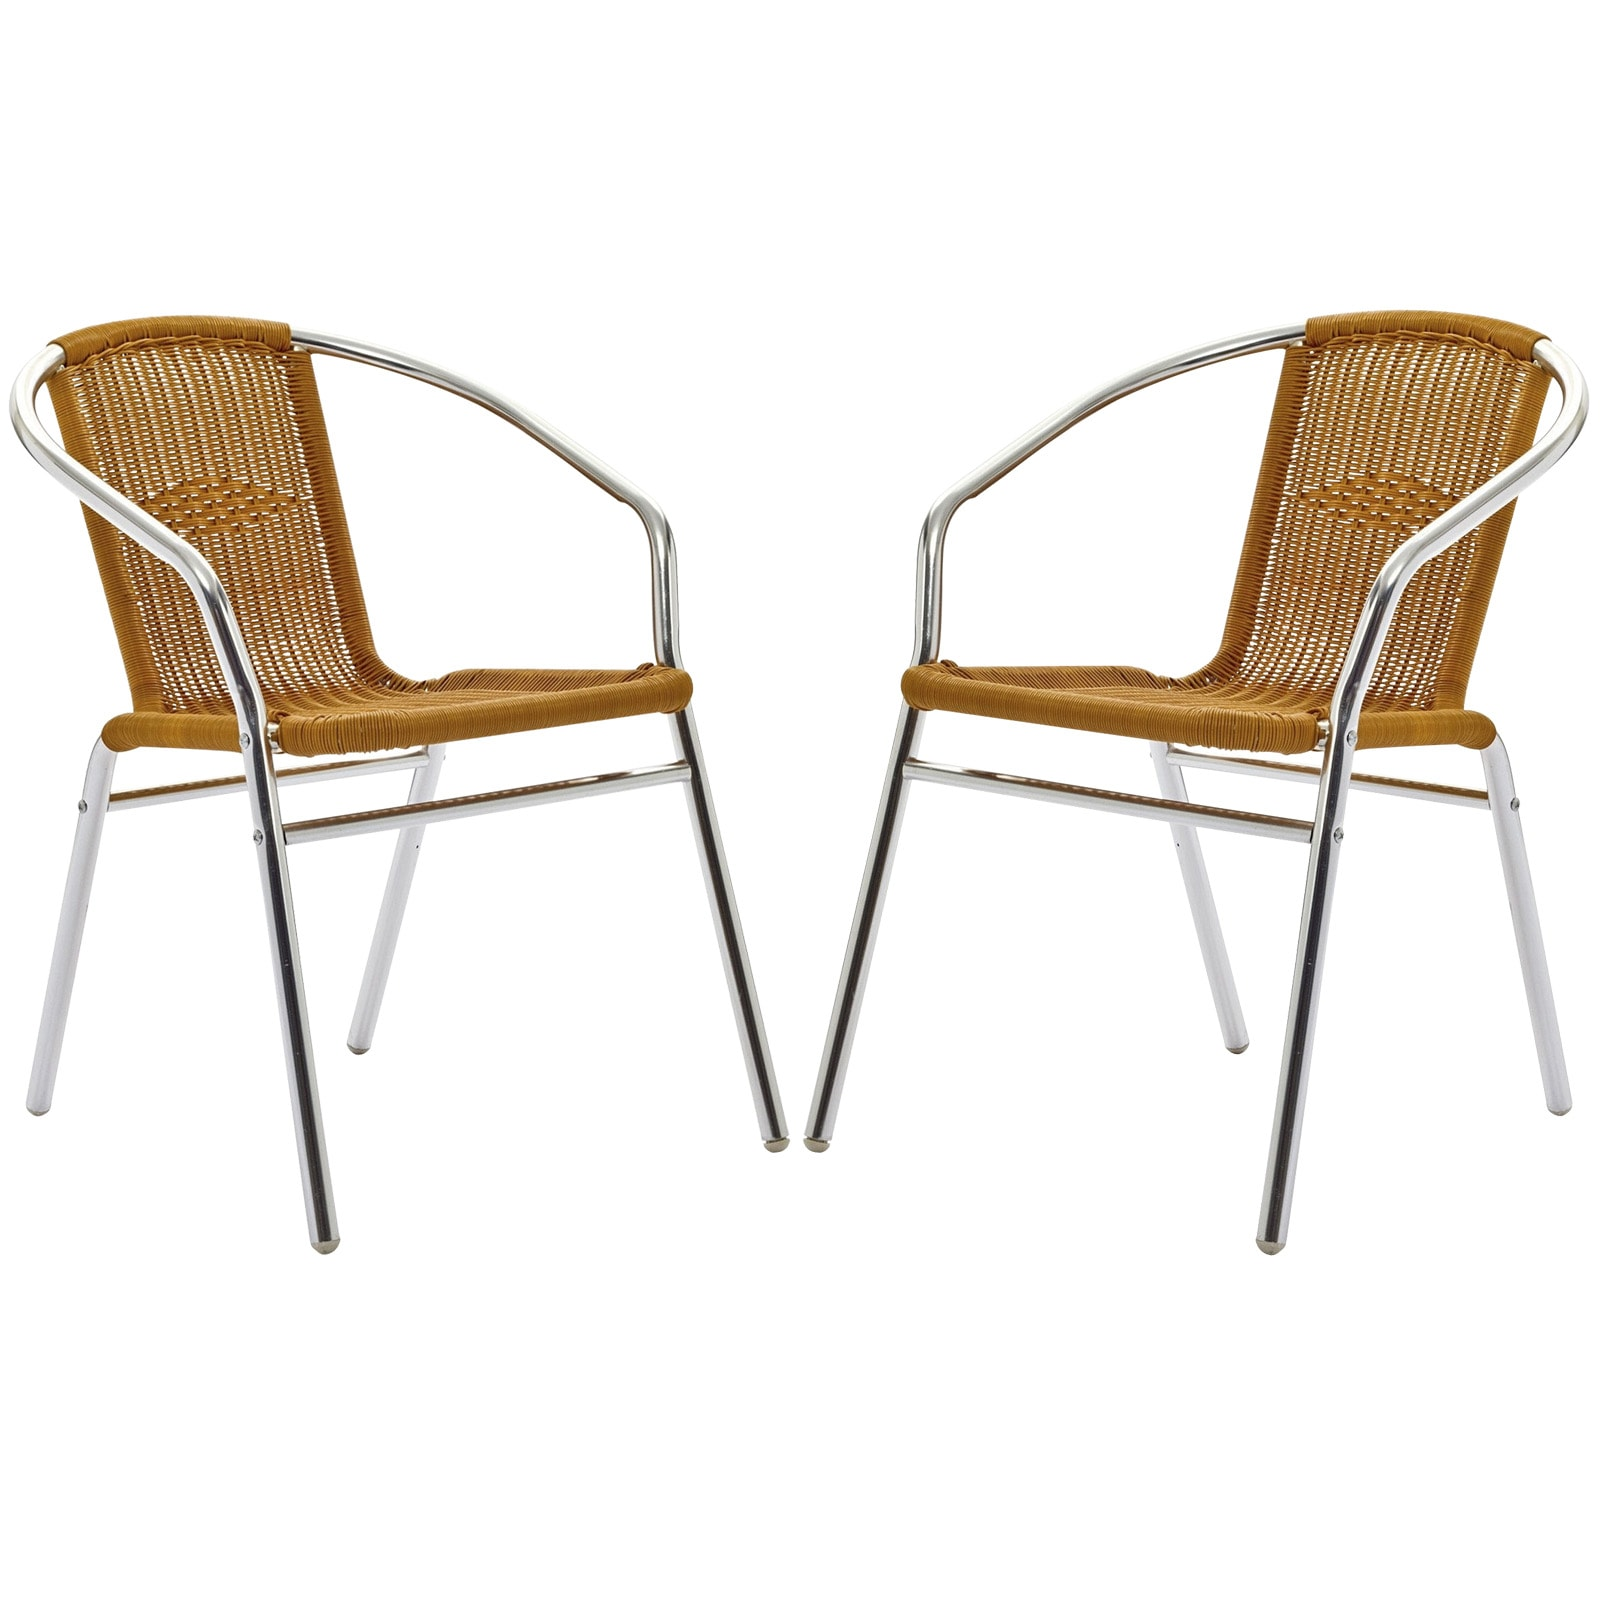 Modern cafe furniture 1349955033 97520800 jpg - Filename Chromed Rattan Outdoor Cafe Chairs Set Of 2 Fe32ec61 6e1b 4b4a Bdbb F4bd1cb6719b Jpg